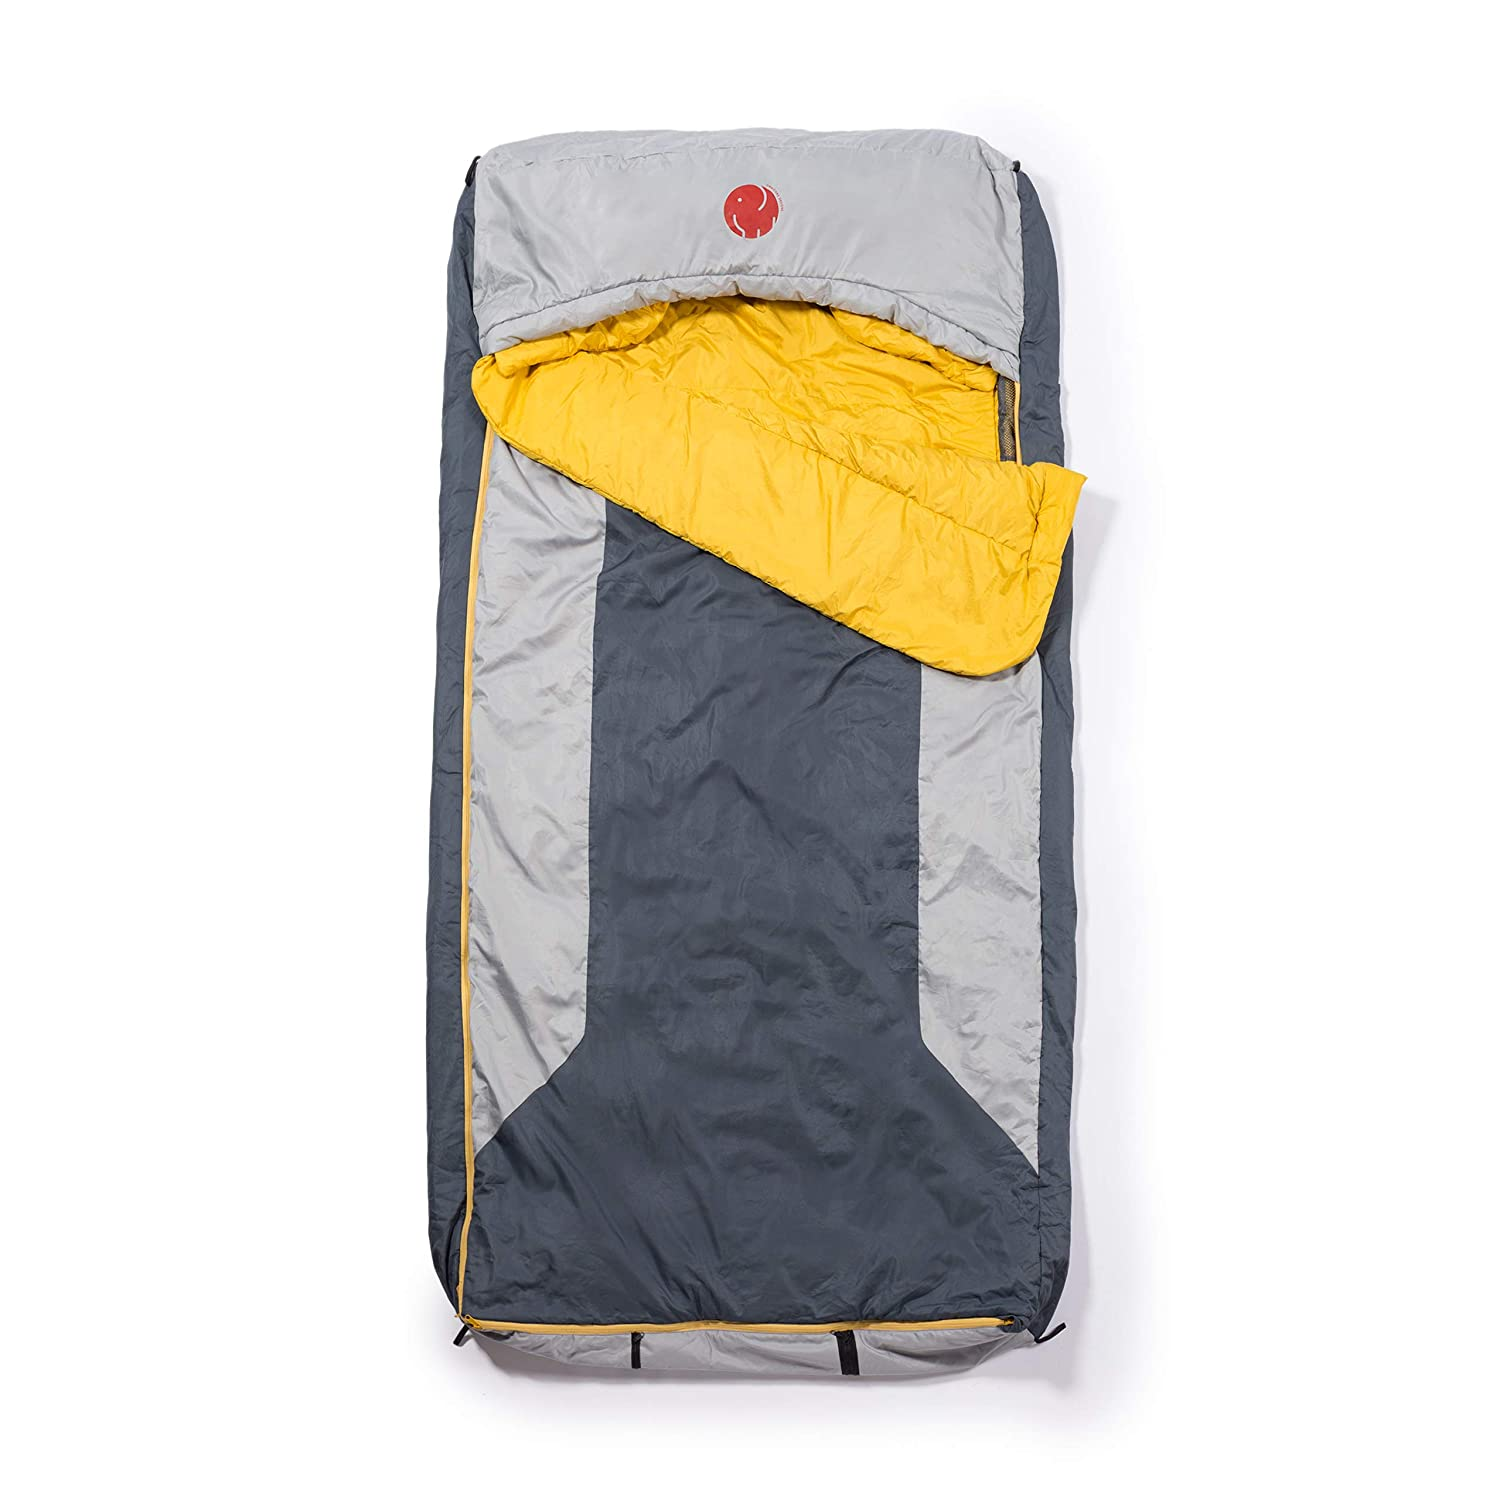 OmniCore Designs Multi Down Hooded Rectangular Sleeping Bag -10F to 30F with 4pt. Compression Stuff Sack